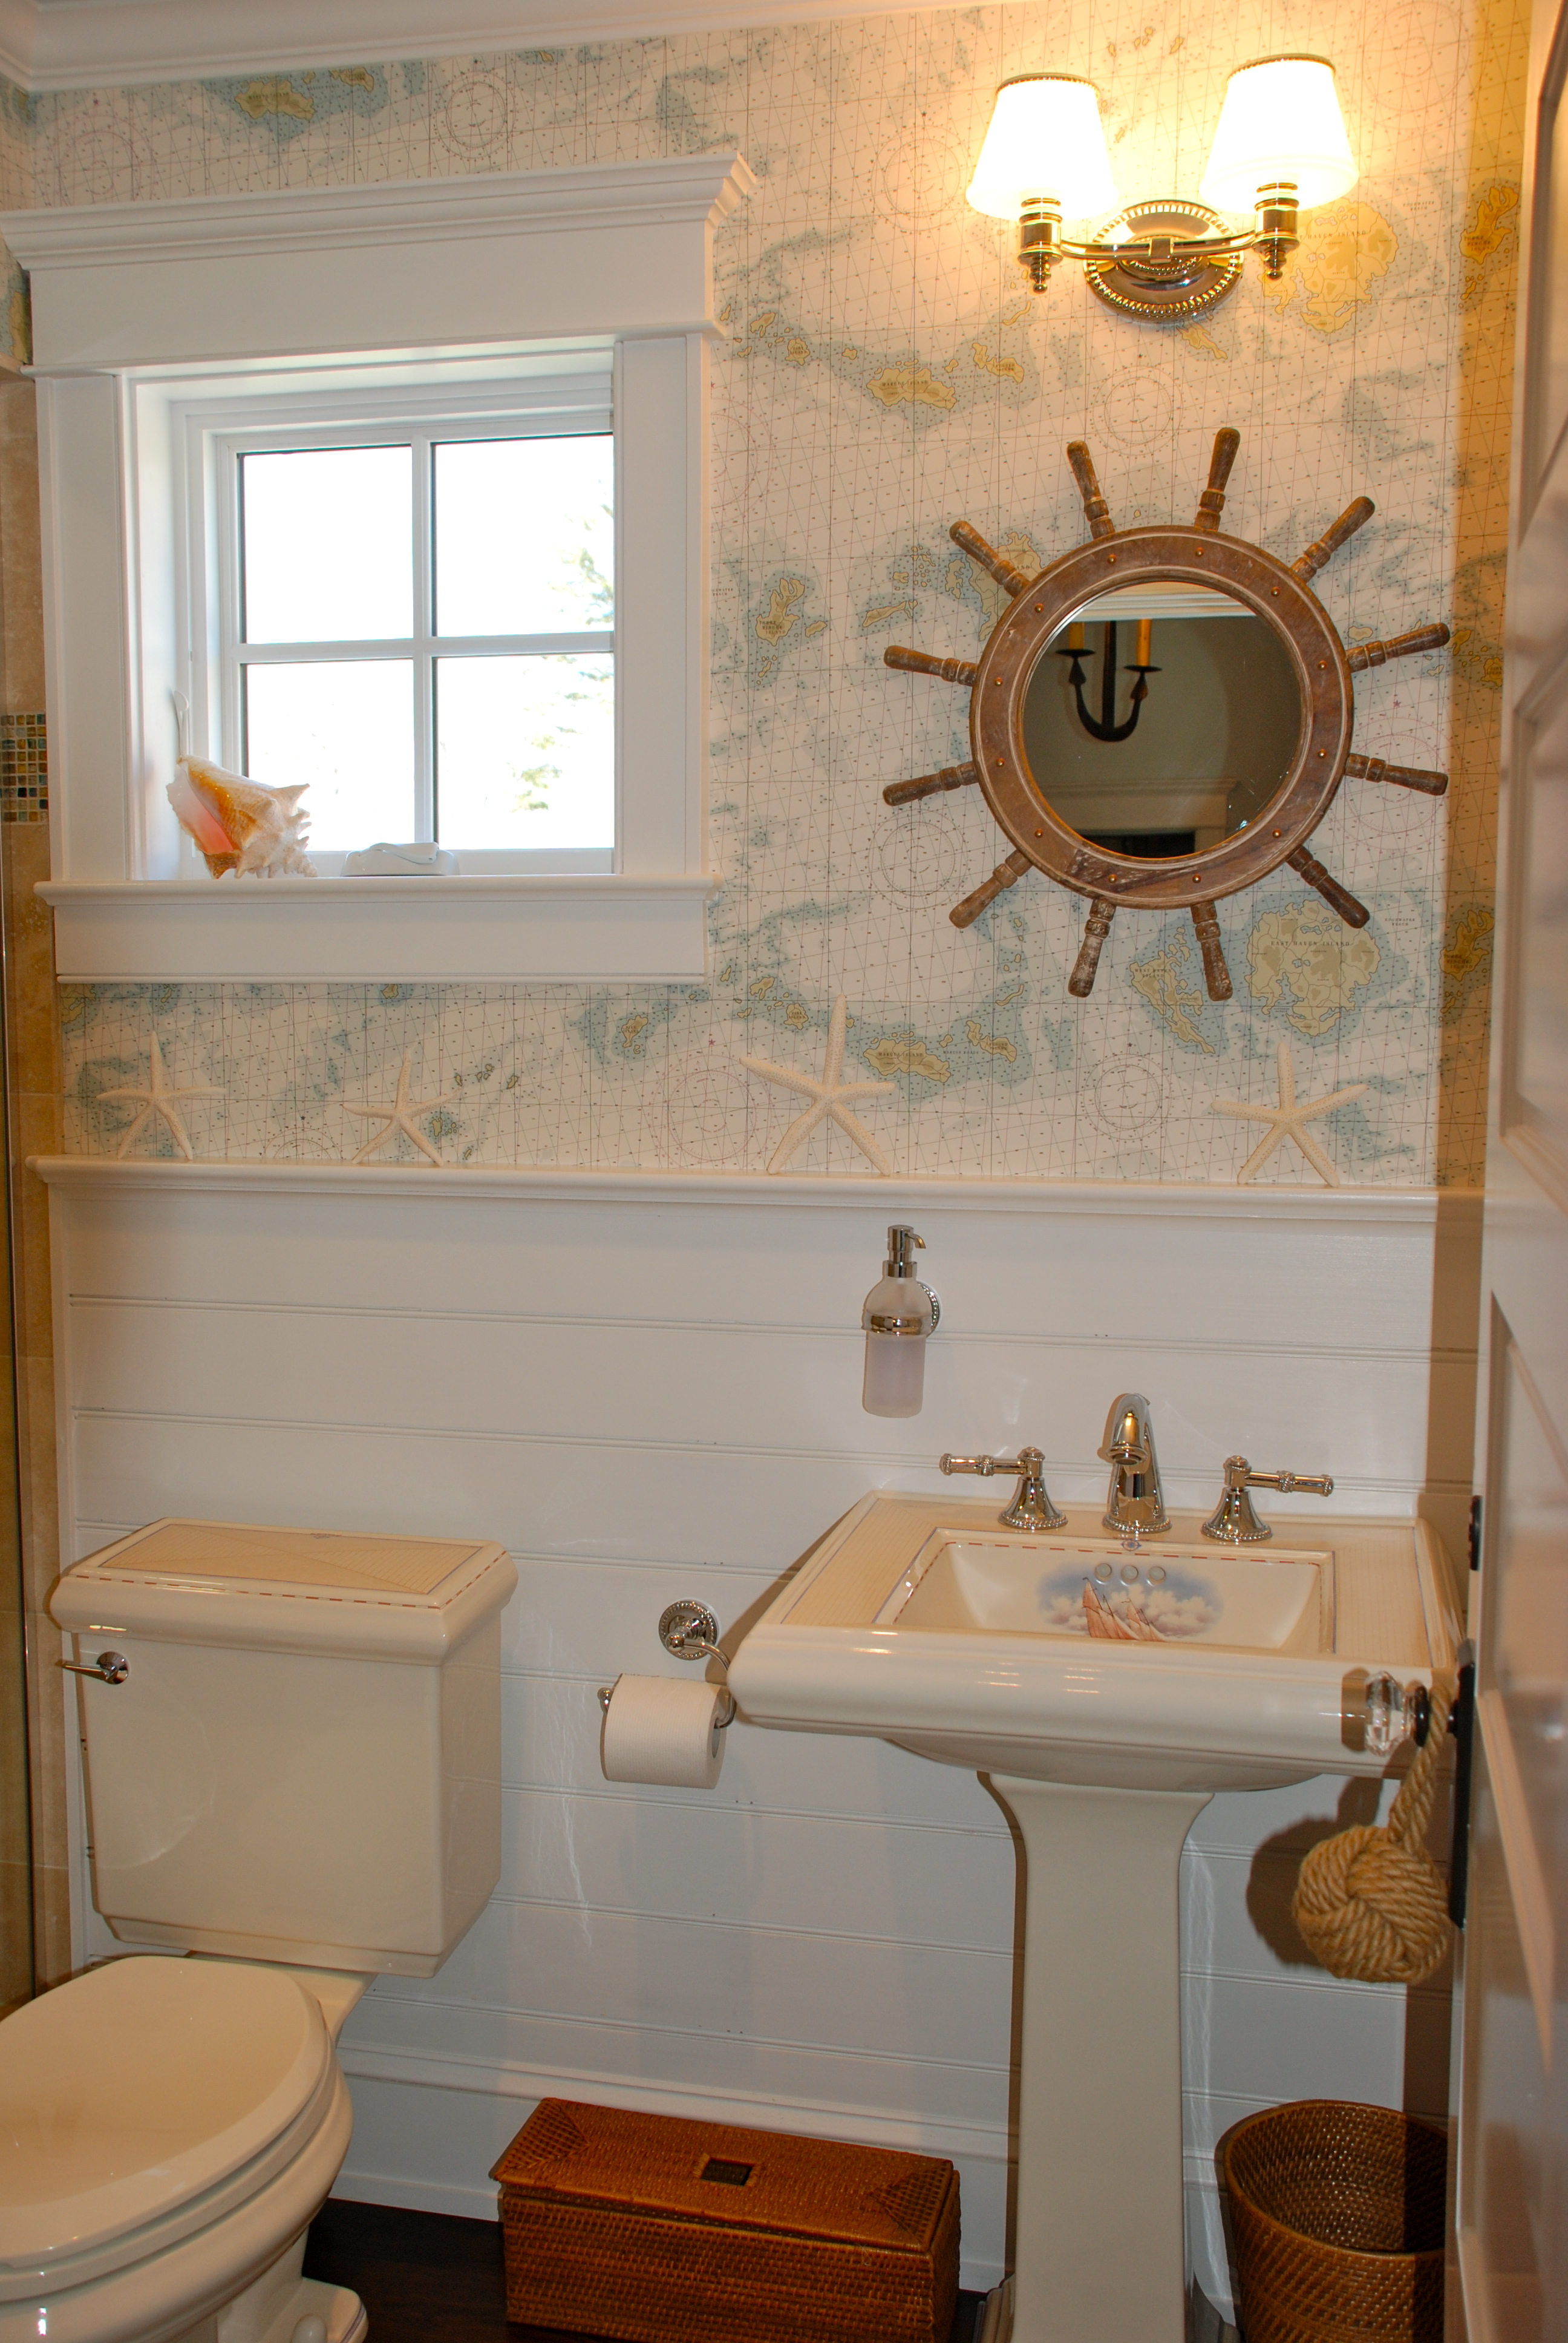 Ralph lauren saltwater living ralph lauren wallpapered powder room gumiabroncs Images